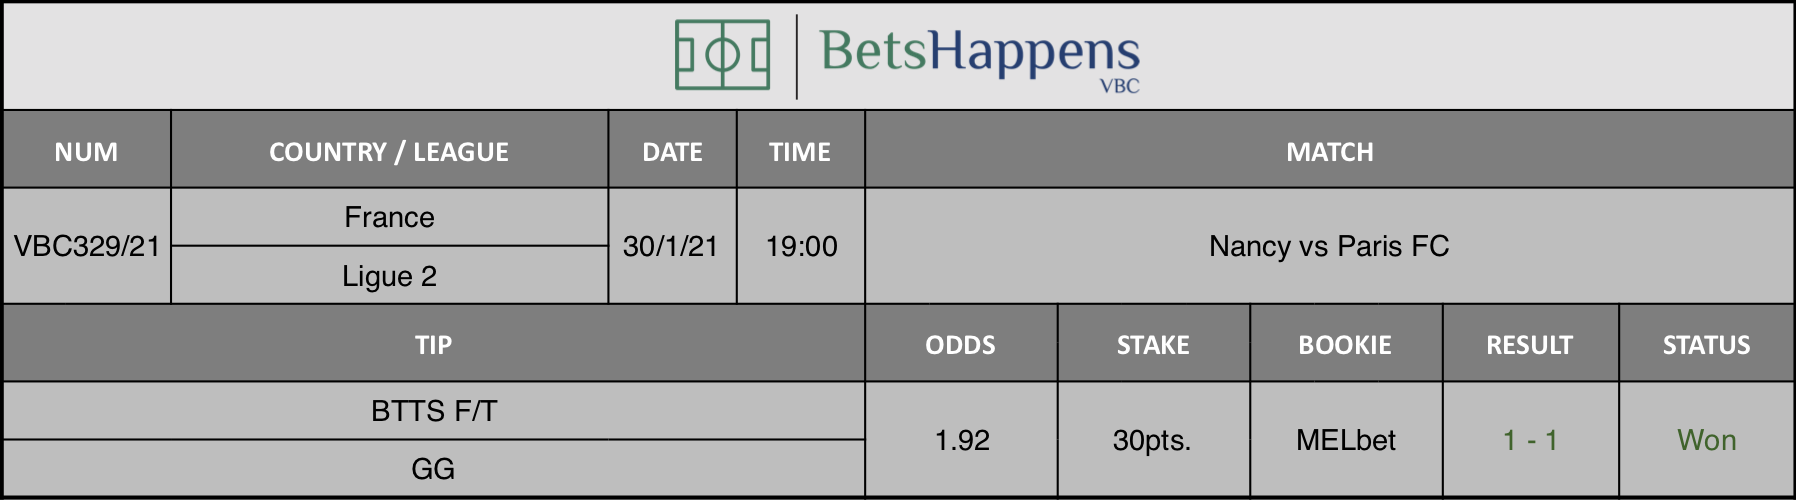 Results of our tip for the Nancy vs Paris FC match where BTTS F/T  GG is recommended.